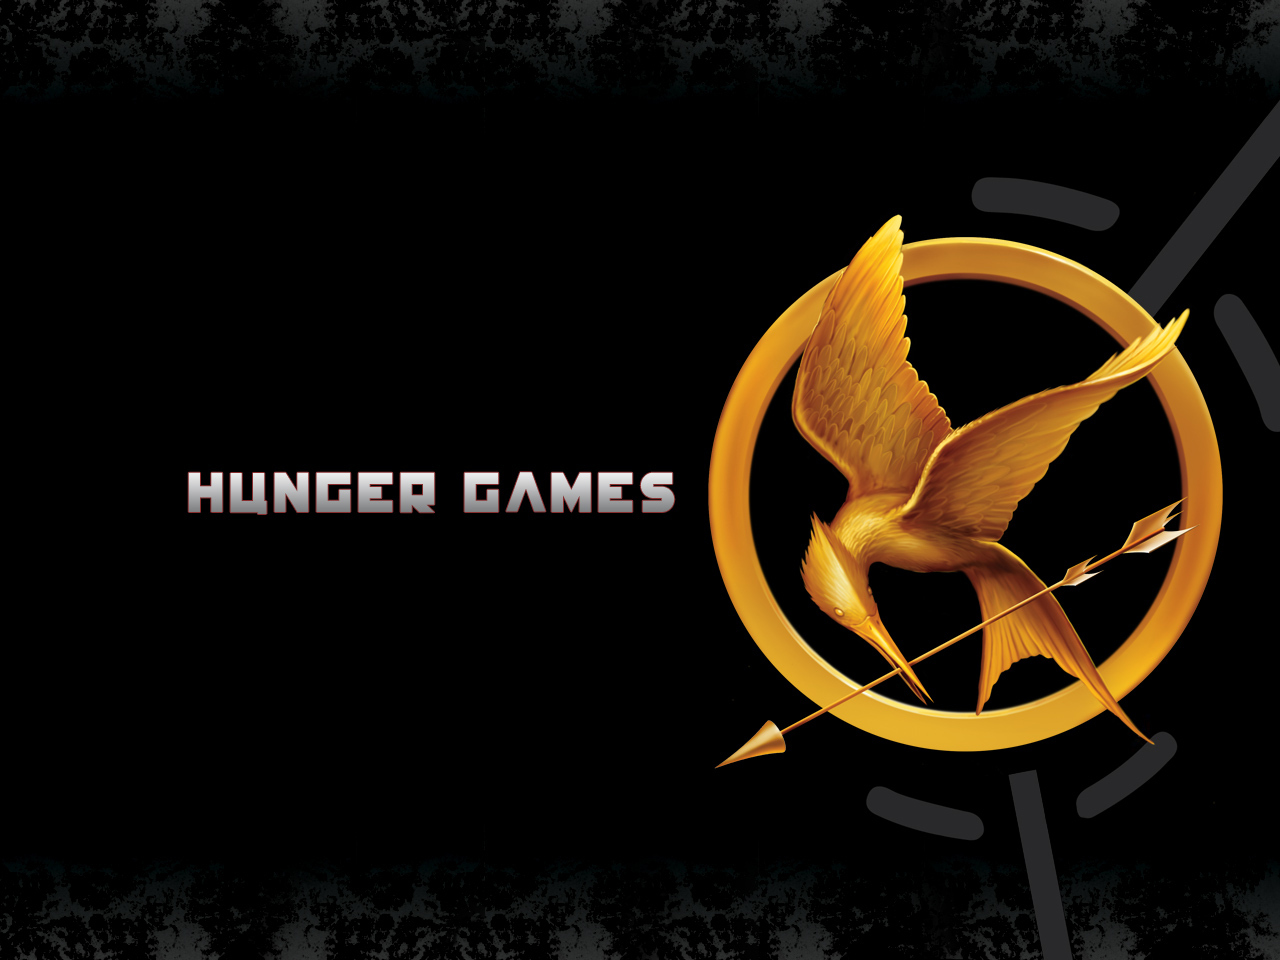 https://i0.wp.com/images1.fanpop.com/images/photos/2600000/The-Hunger-Games-the-hunger-game-trilogy-2624991-1280-960.jpg